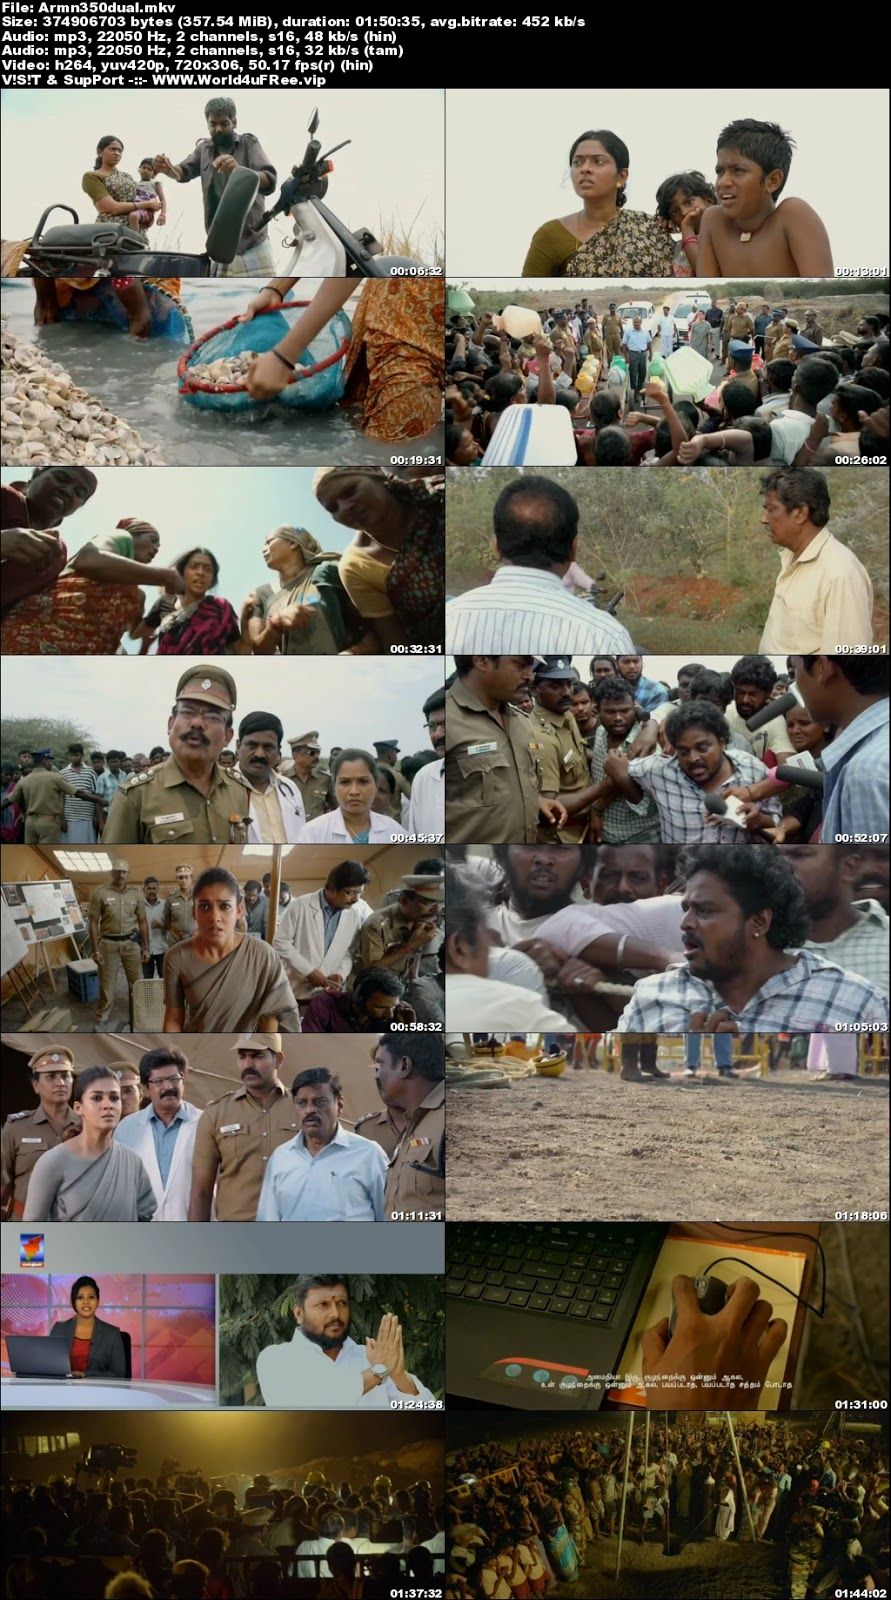 Aramm 2017 Dual Audio UNCUT HDRip 480p 350Mb x264 world4ufree.vip , South indian movie Aramm 2017 2018 hindi dubbed world4ufree.vip 480p hdrip webrip dvdrip 400mb brrip bluray small size compressed free download or watch online at world4ufree.vip